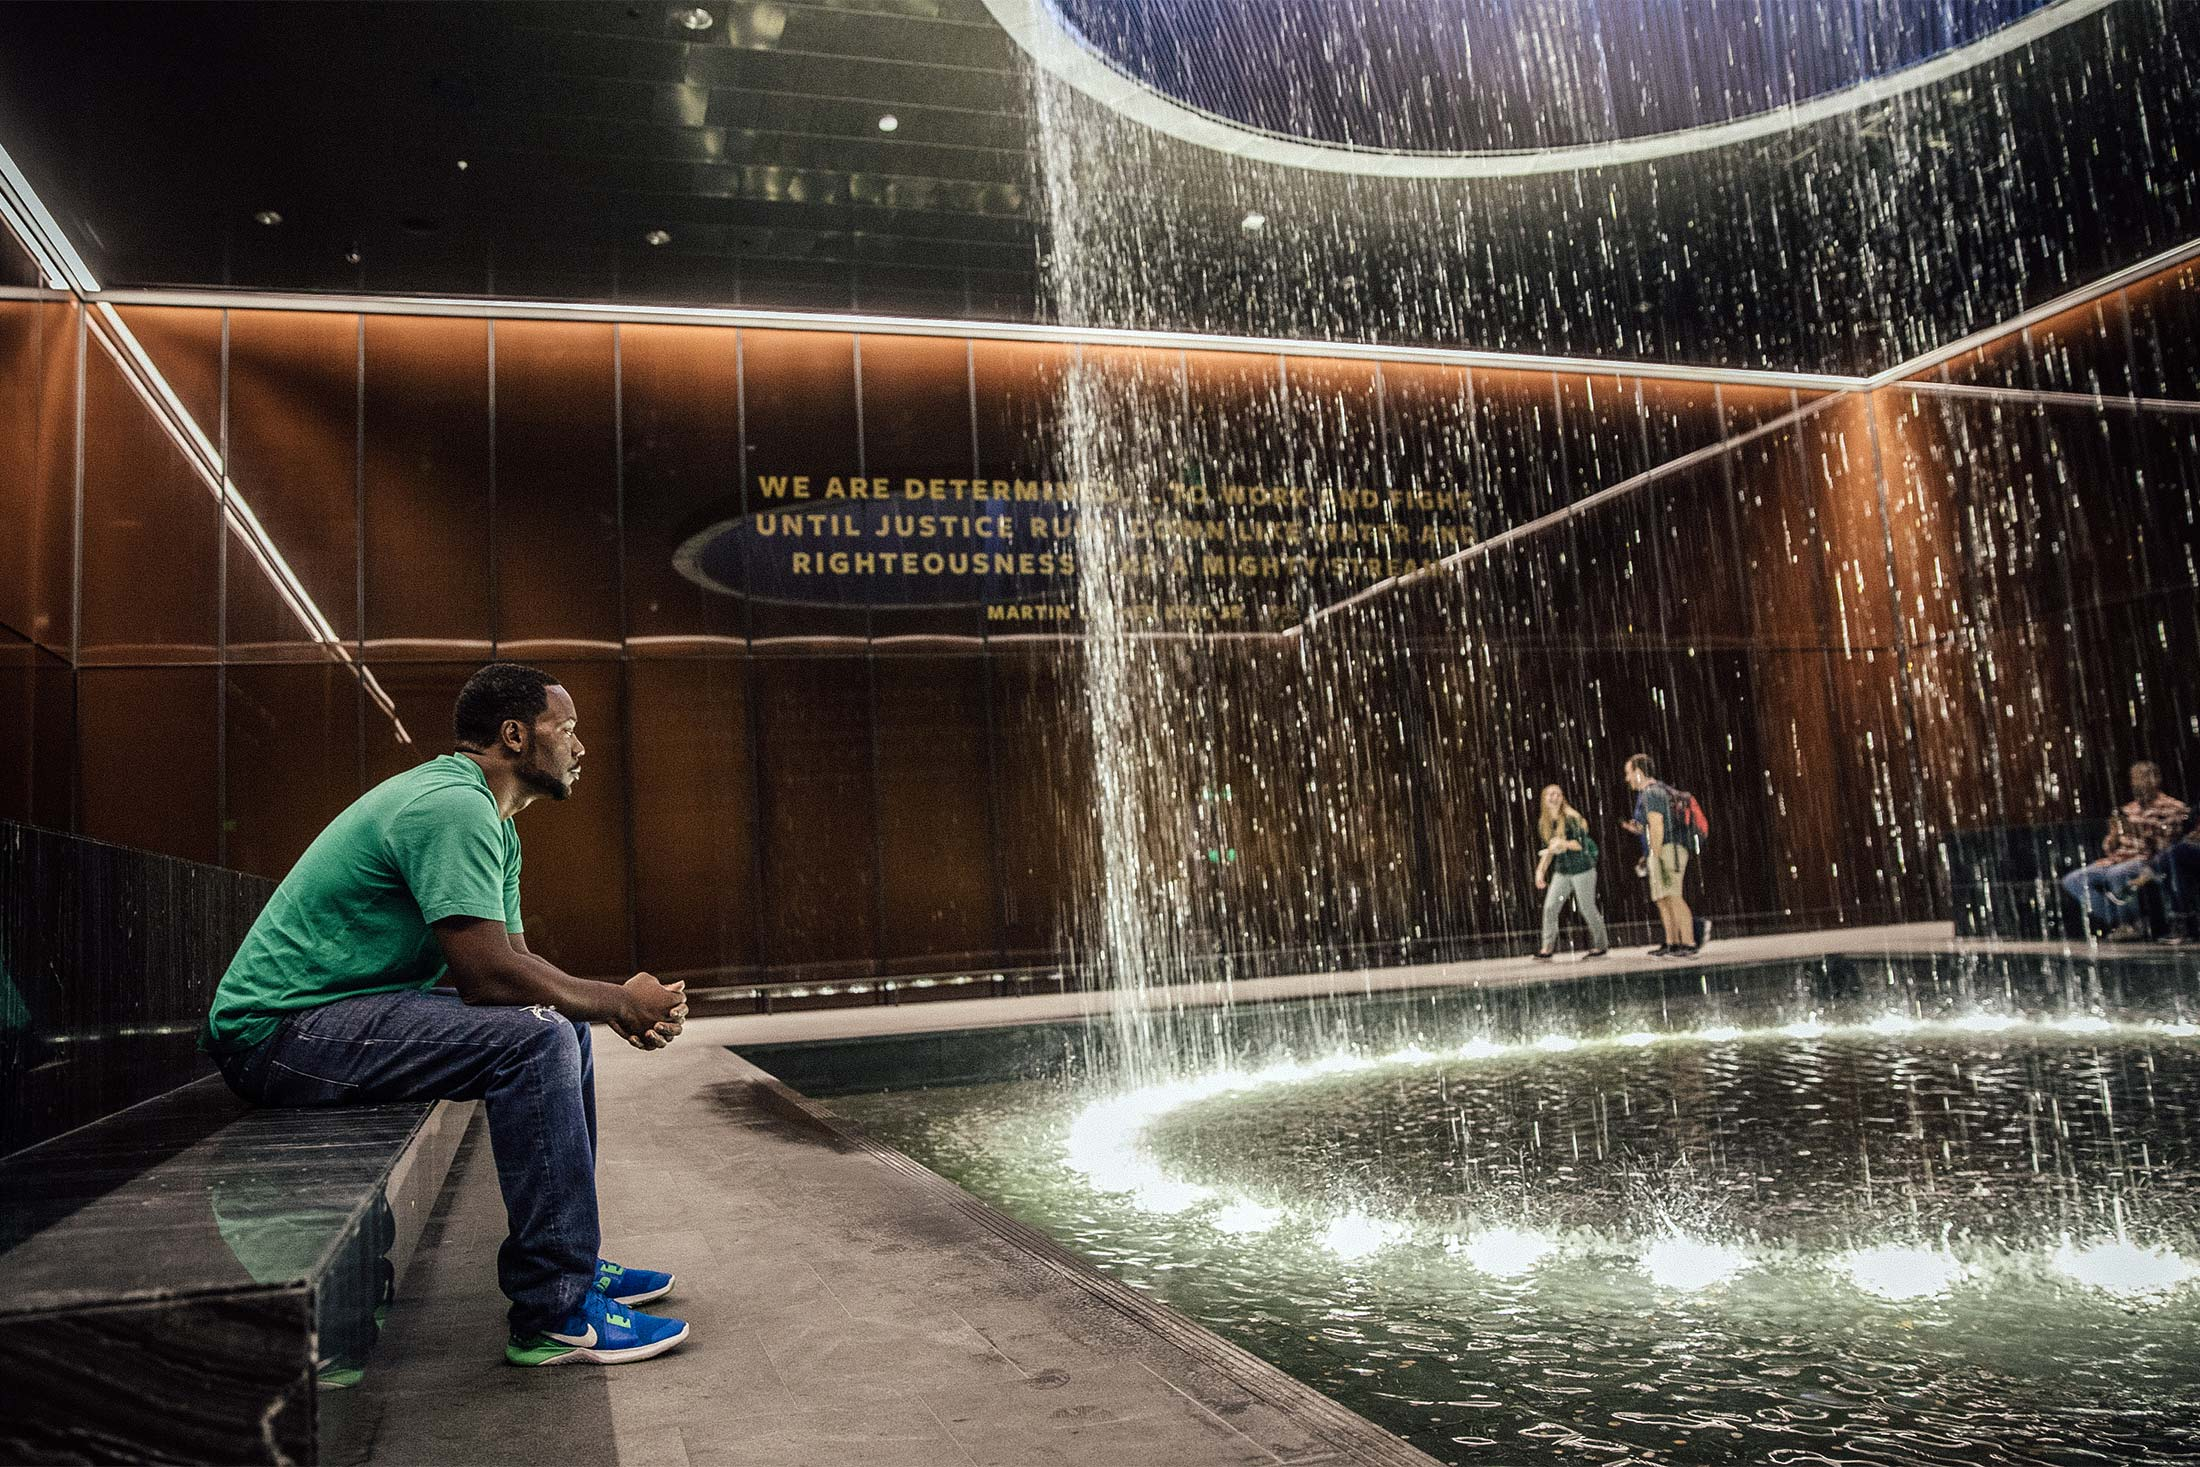 A black man sits on a bench and looks into a fountain in the National Museum of African American History and Culture.